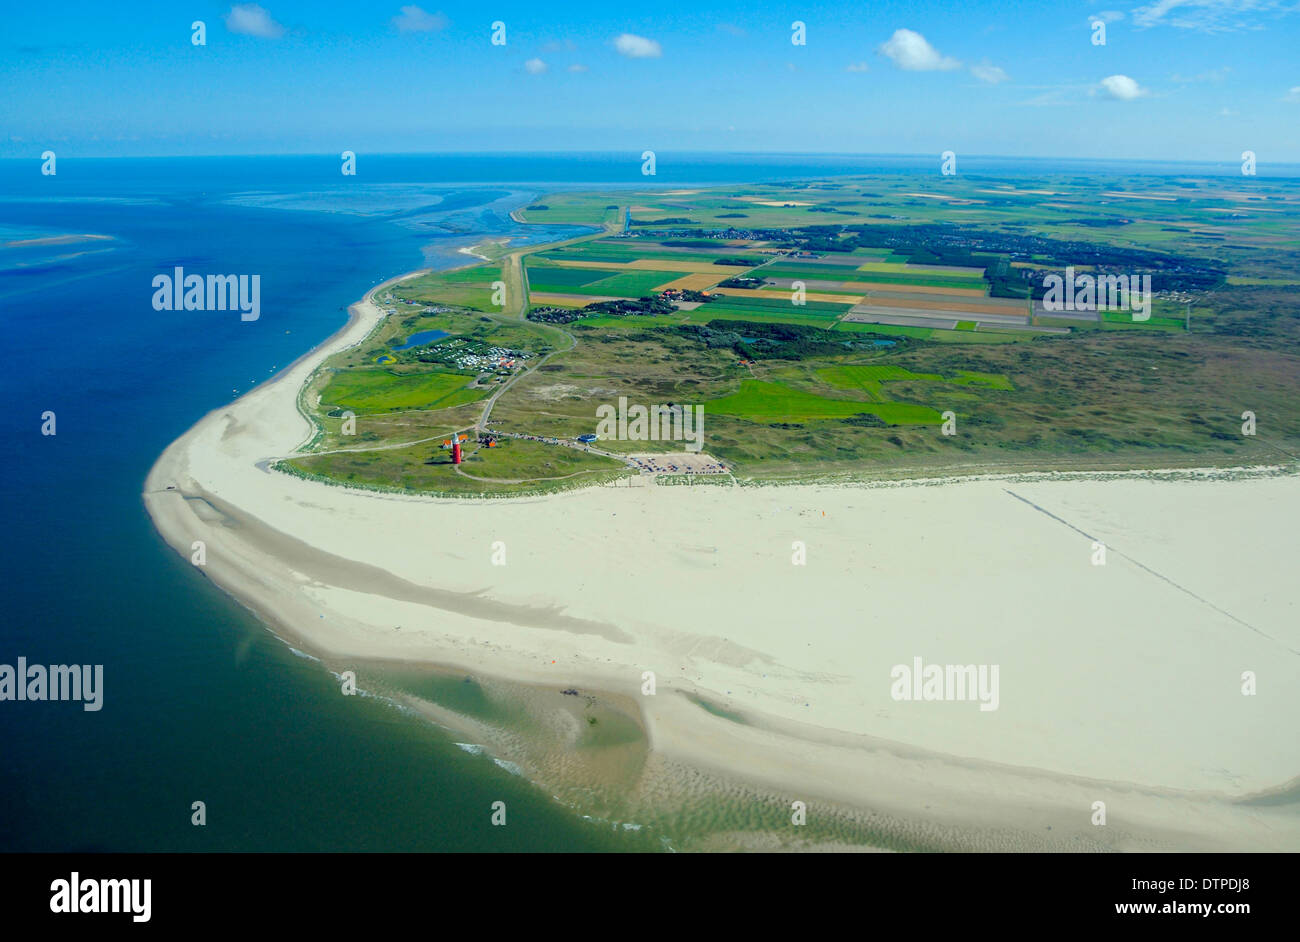 North cap of Texel, Island of Texel, Netherlands - Stock Image